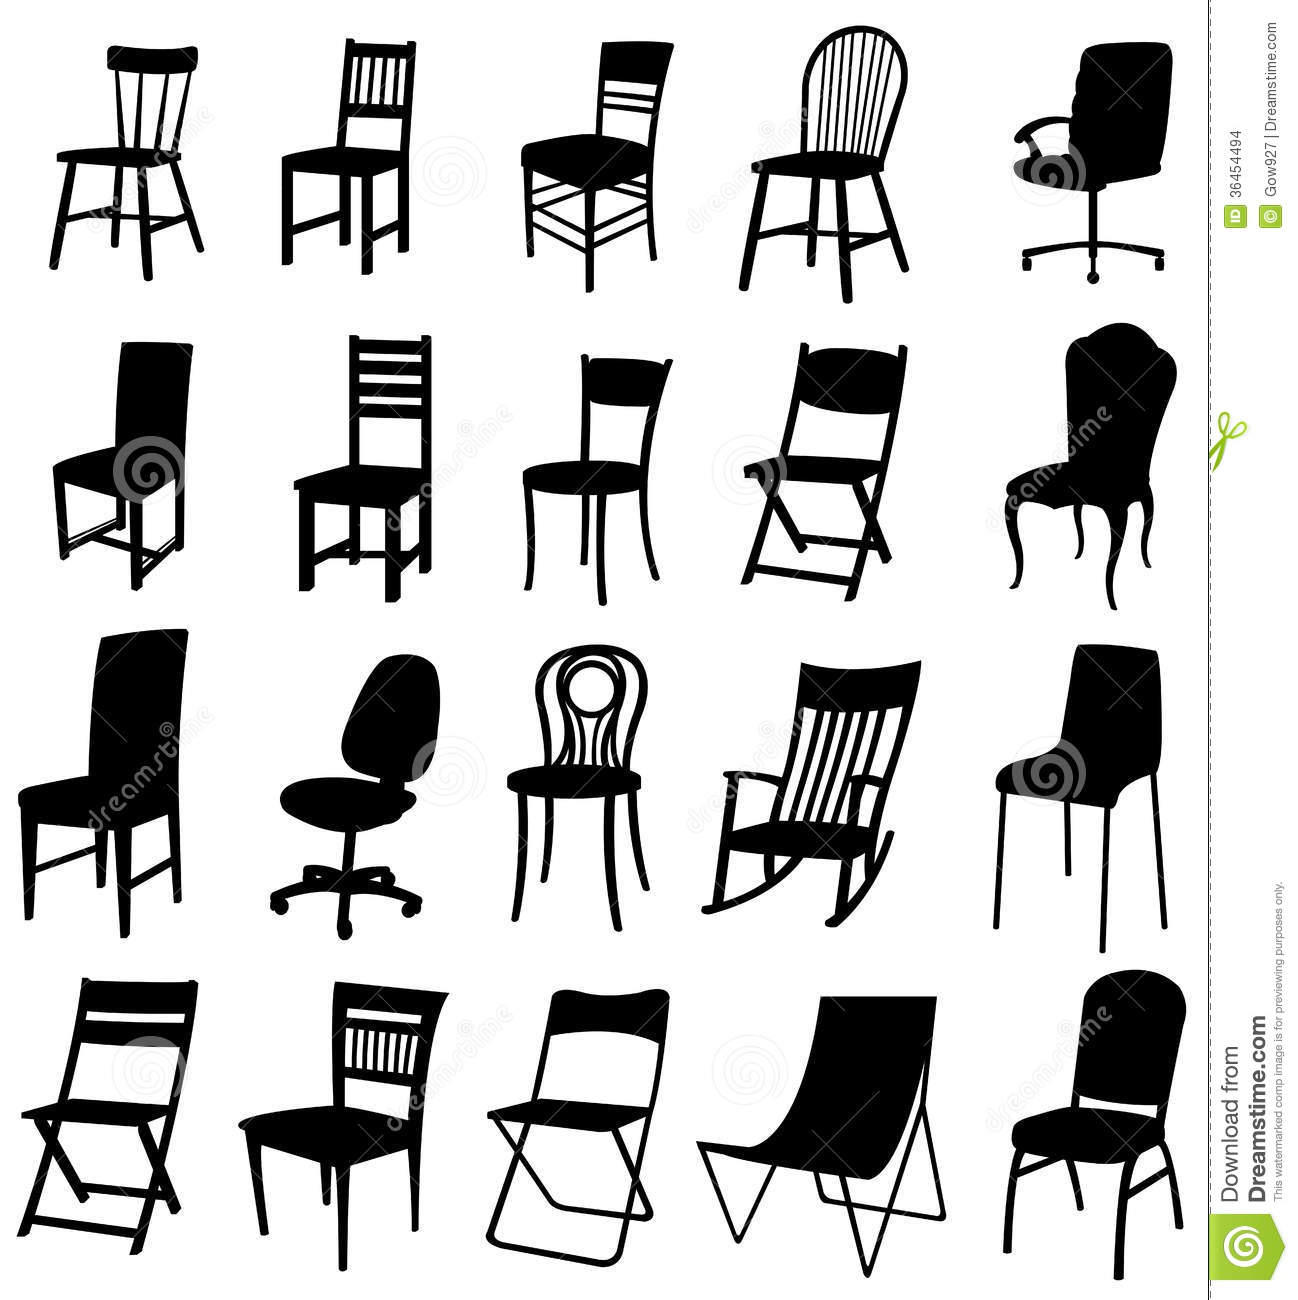 Antique chair silhouette - Sets Of Silhouette Chair 2 Stock Images